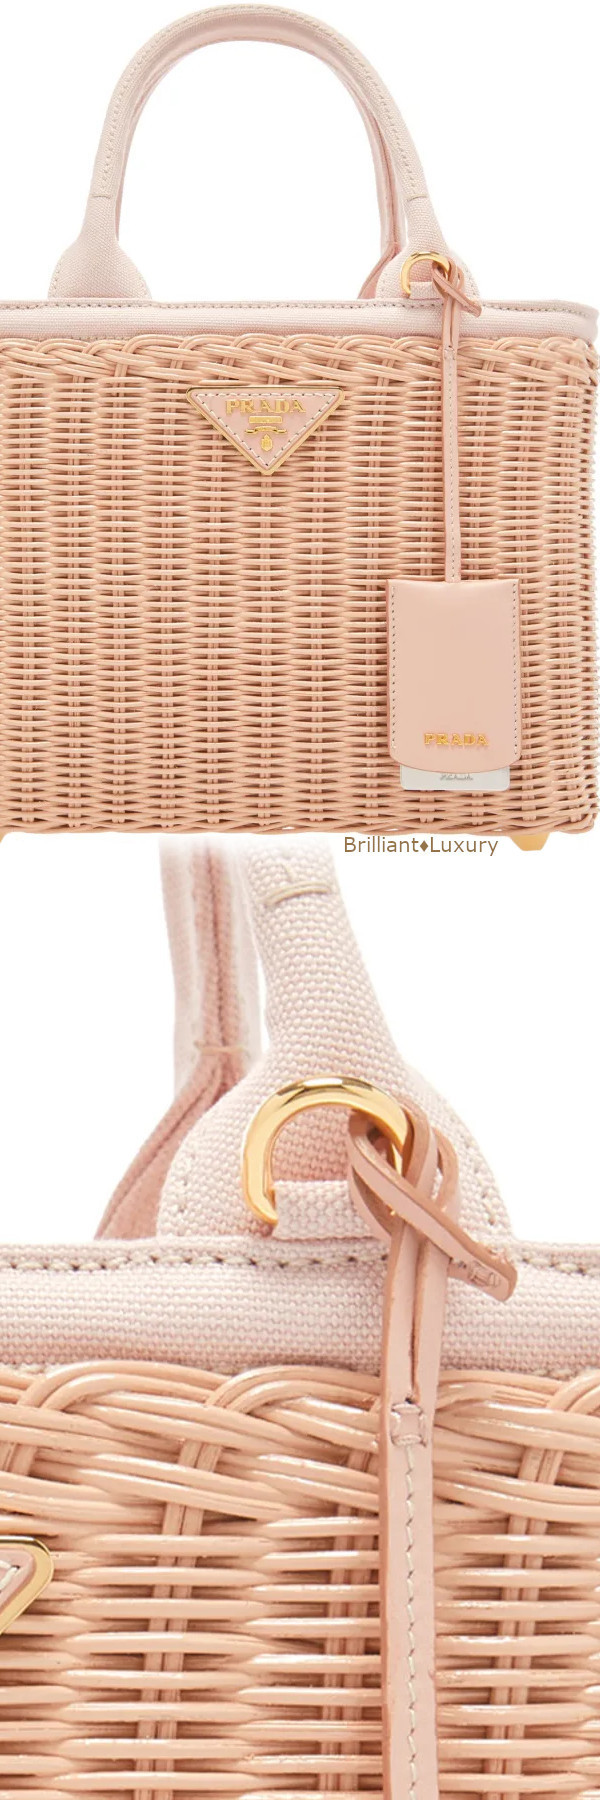 Prada Raffia elegant neutral woven tote bag